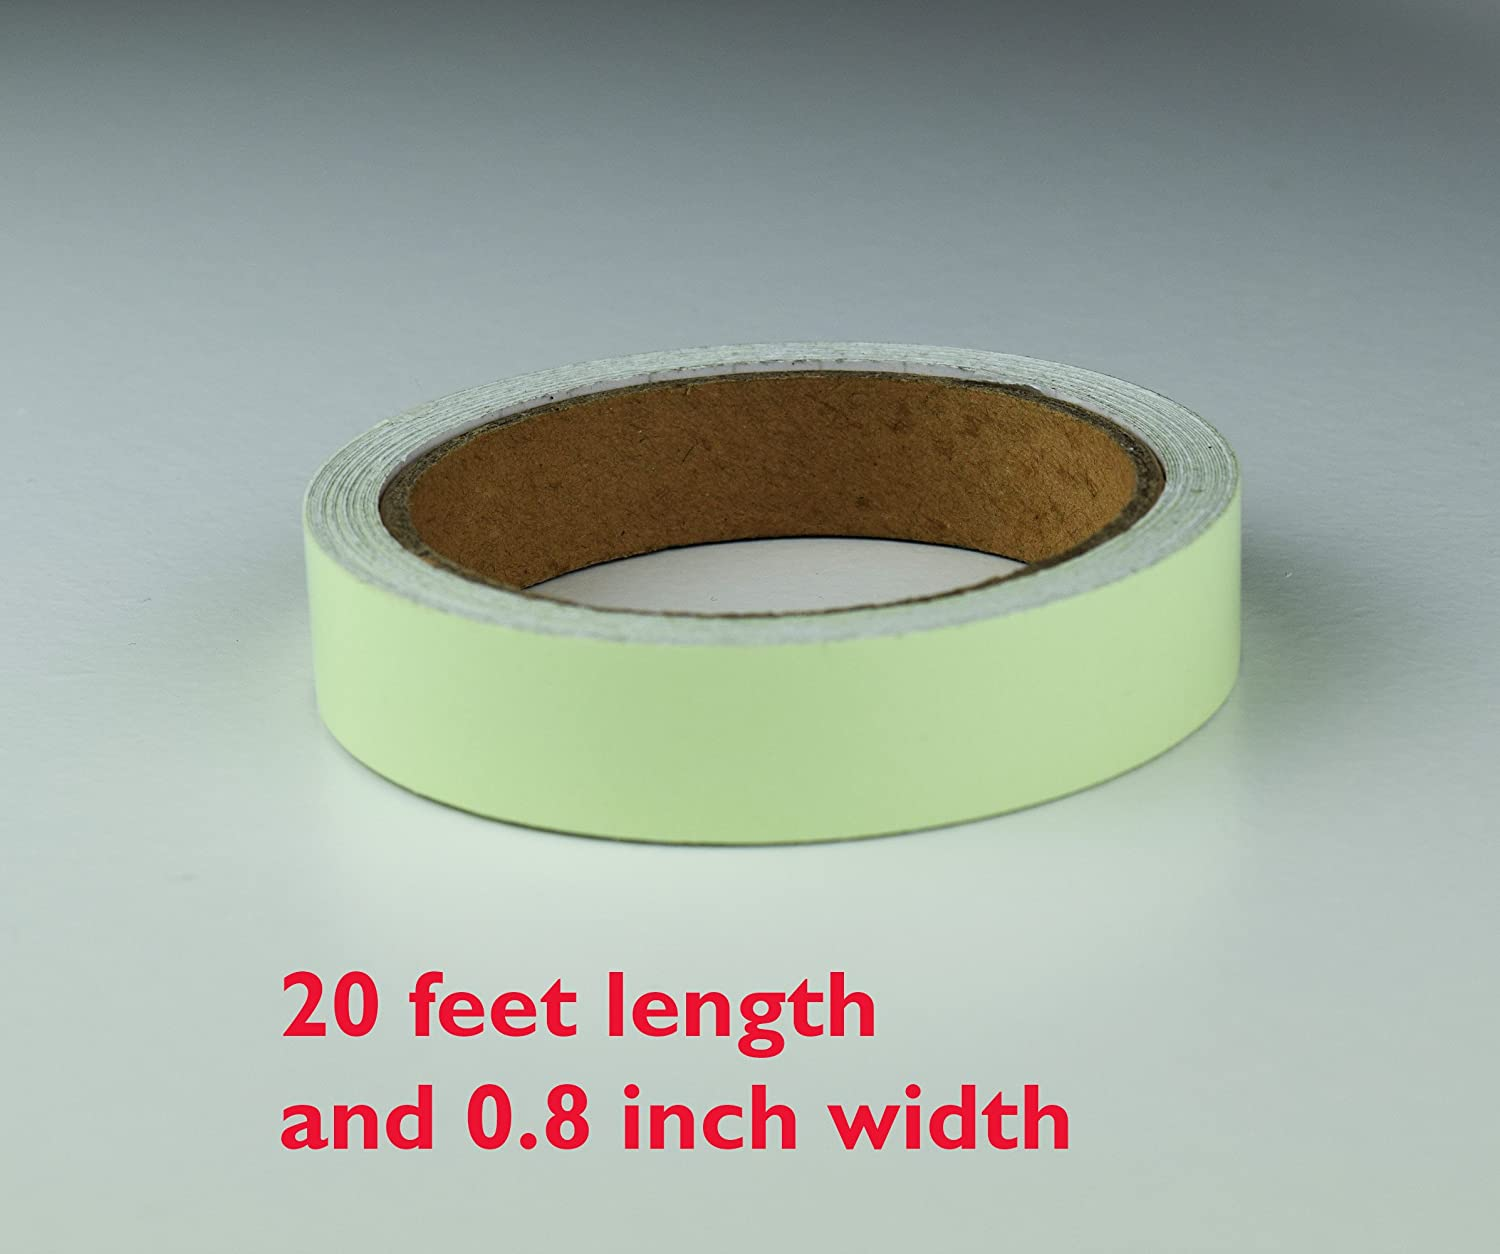 Office Adhesive Tape Careful 3m Reflective Glow Tape Self-adhesive Sticker Removable Luminous Tape Fluorescent Glowing Dark Striking Warning Tape Tapes, Adhesives & Fasteners